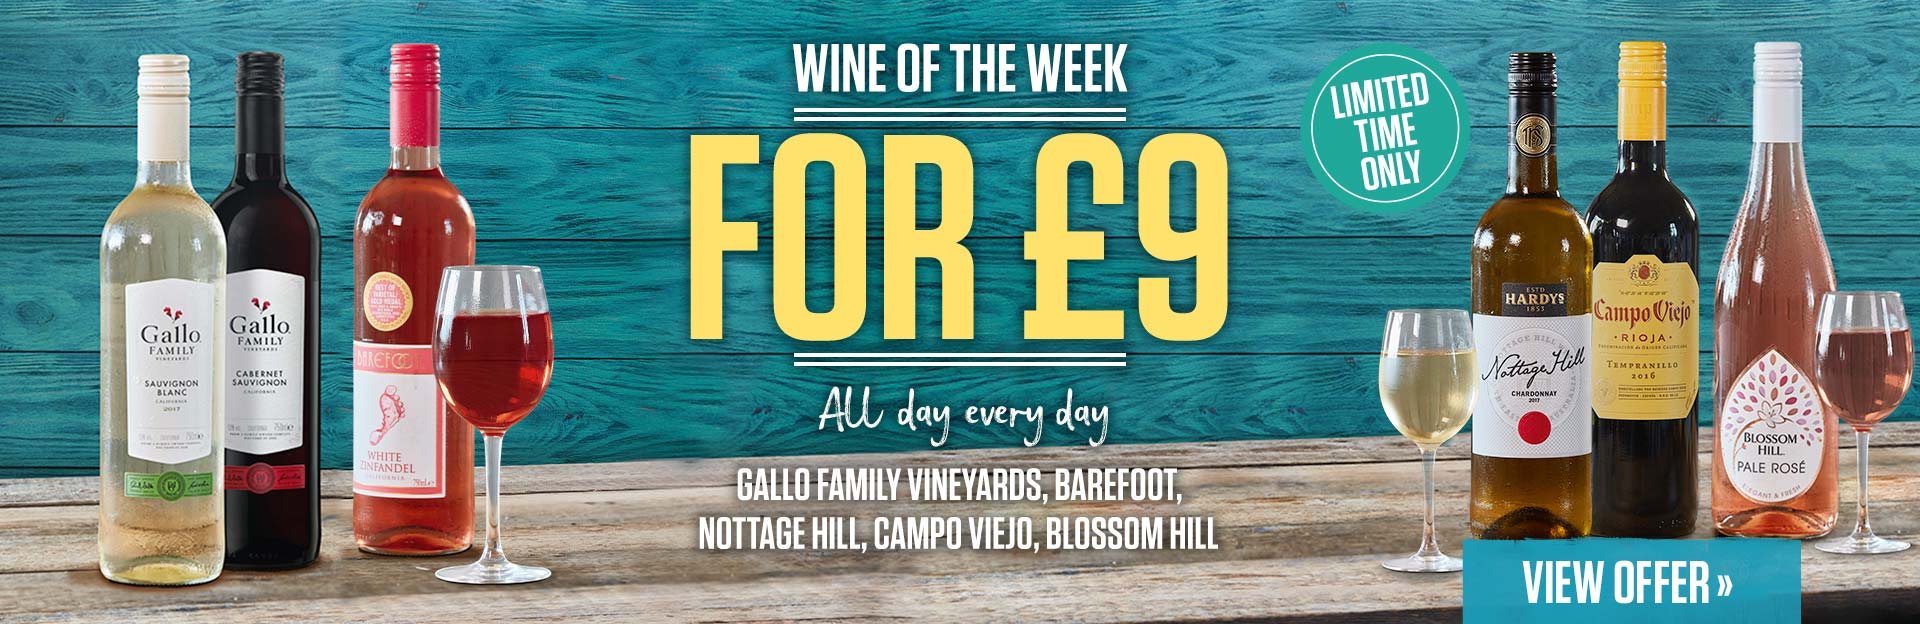 suburban-wineoffer-outlet-homepage-banner-pbC.jpg